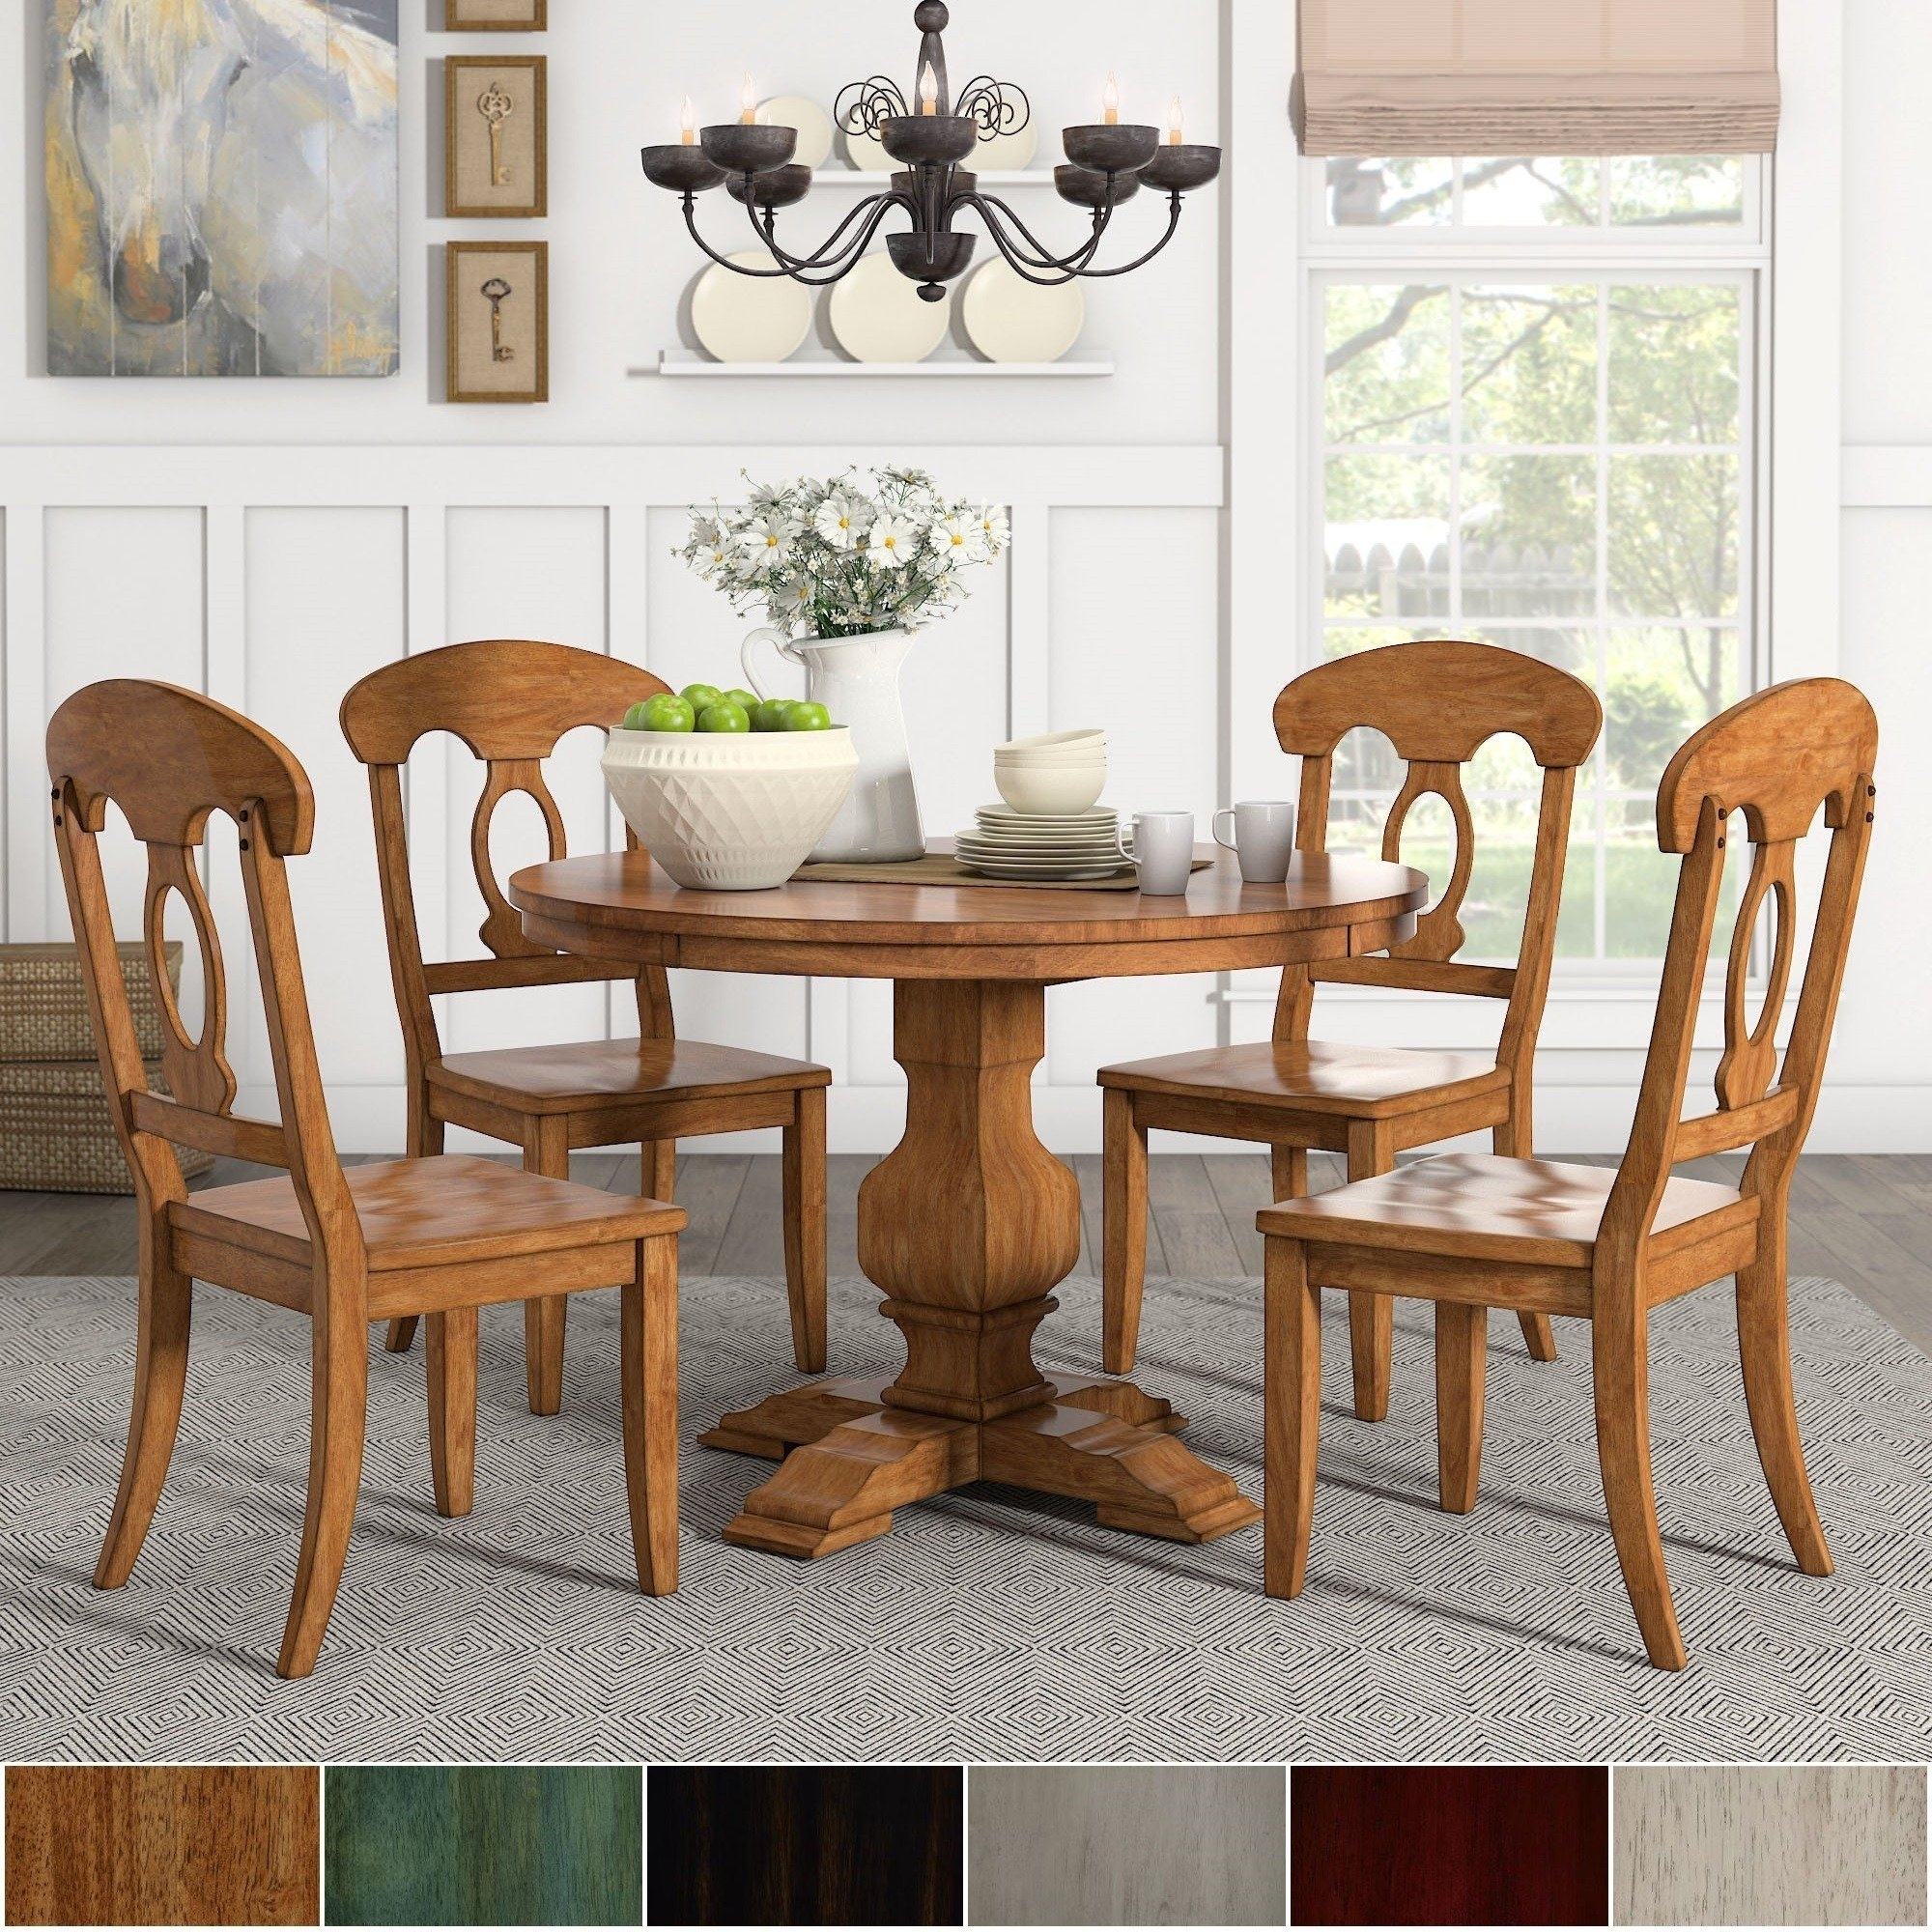 Eleanor Oak Round Soild Wood Top 5 Piece Dining Set – Napoleon Back Intended For Latest Caden 5 Piece Round Dining Sets With Upholstered Side Chairs (View 2 of 20)